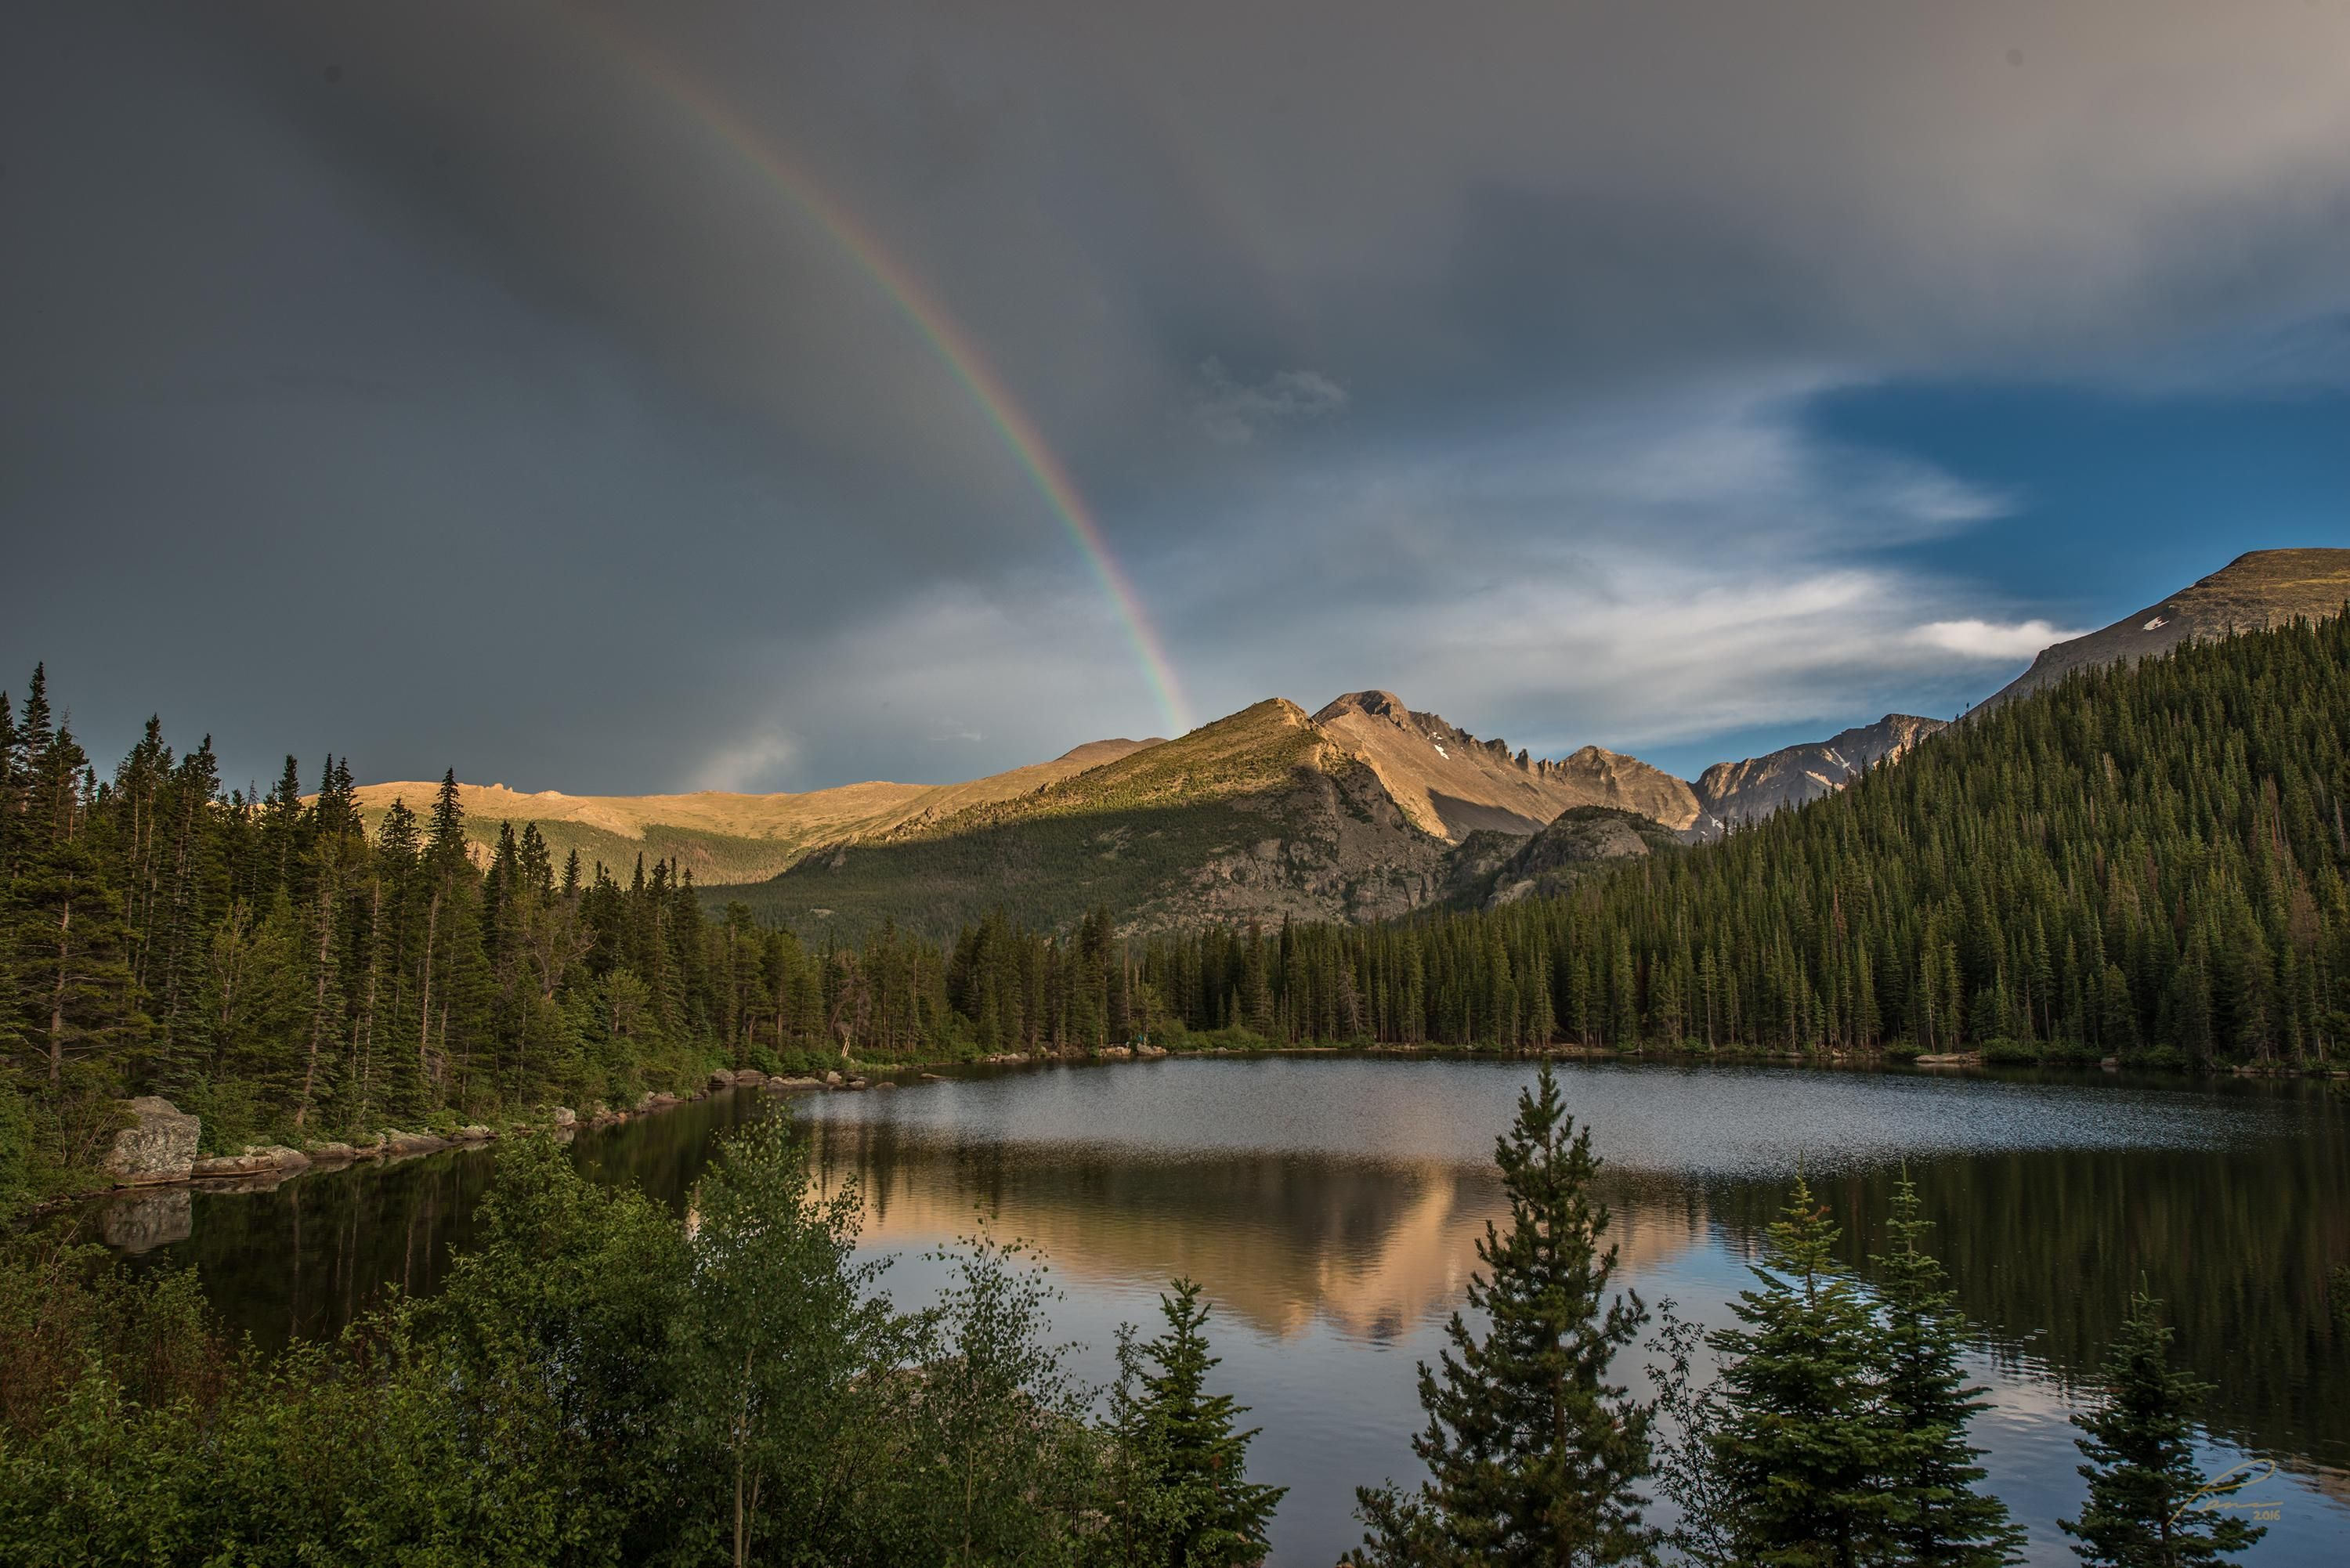 First post here. Spent two weeks photographing in Rocky Mountain NP last summer. Came away with one of my best images on the first evening. [OC] [3000x2002]